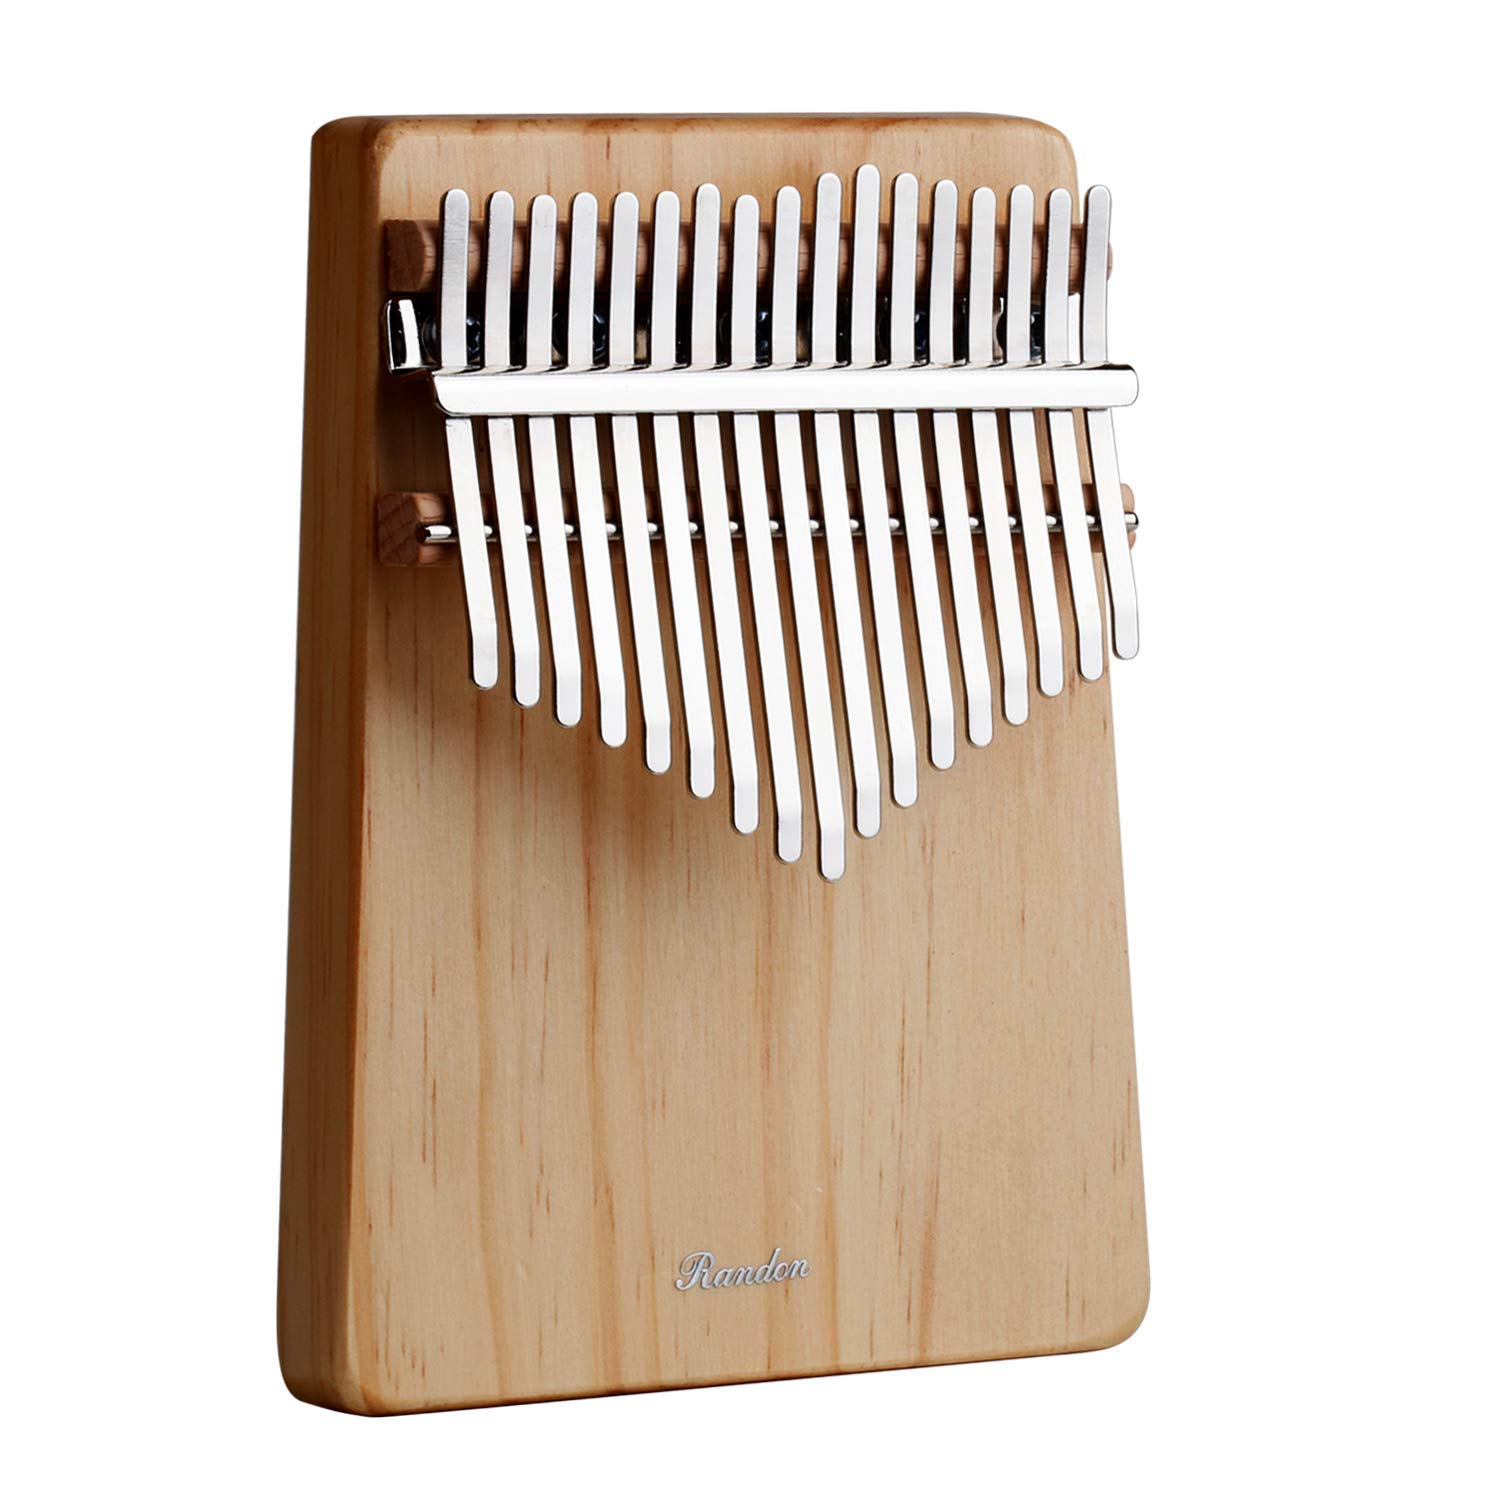 17 Key Kalimba, Randon North American Pine Wood Kalimba Portable Thumb Finger Piano with Tune Hammer and Storage Bag Musical Instrument Gift for Children Friends Music Lovers